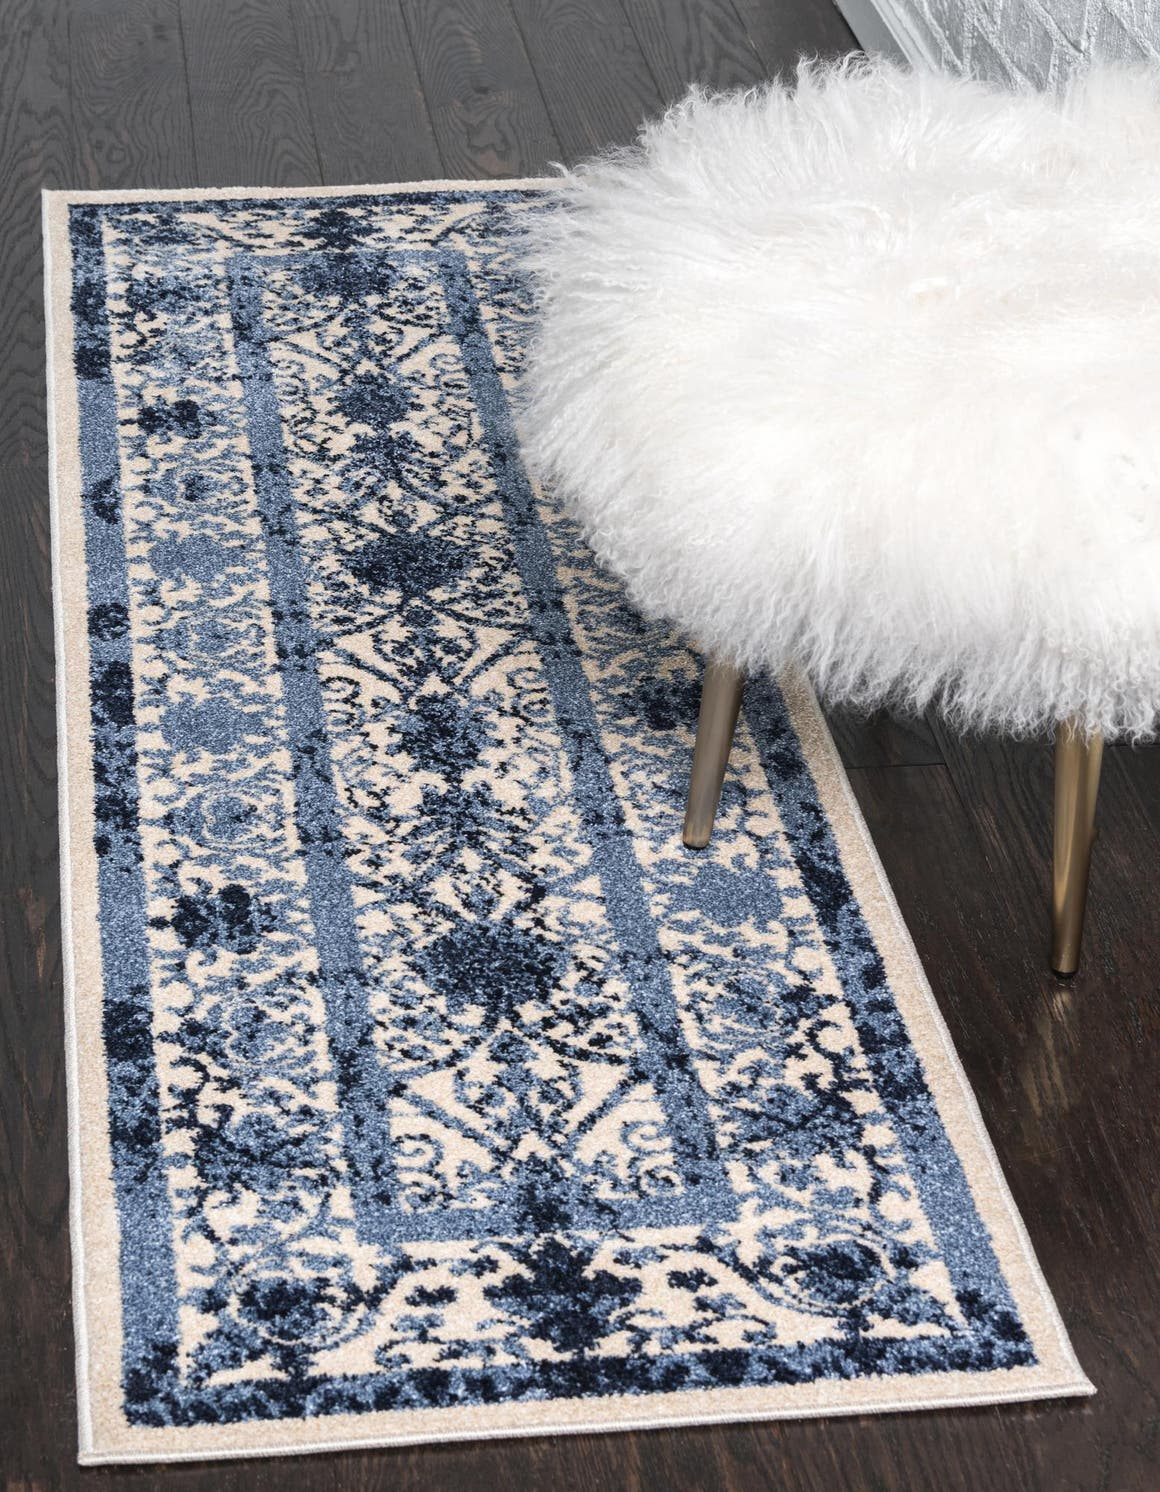 2' x 6' Vista Runner Rug main image